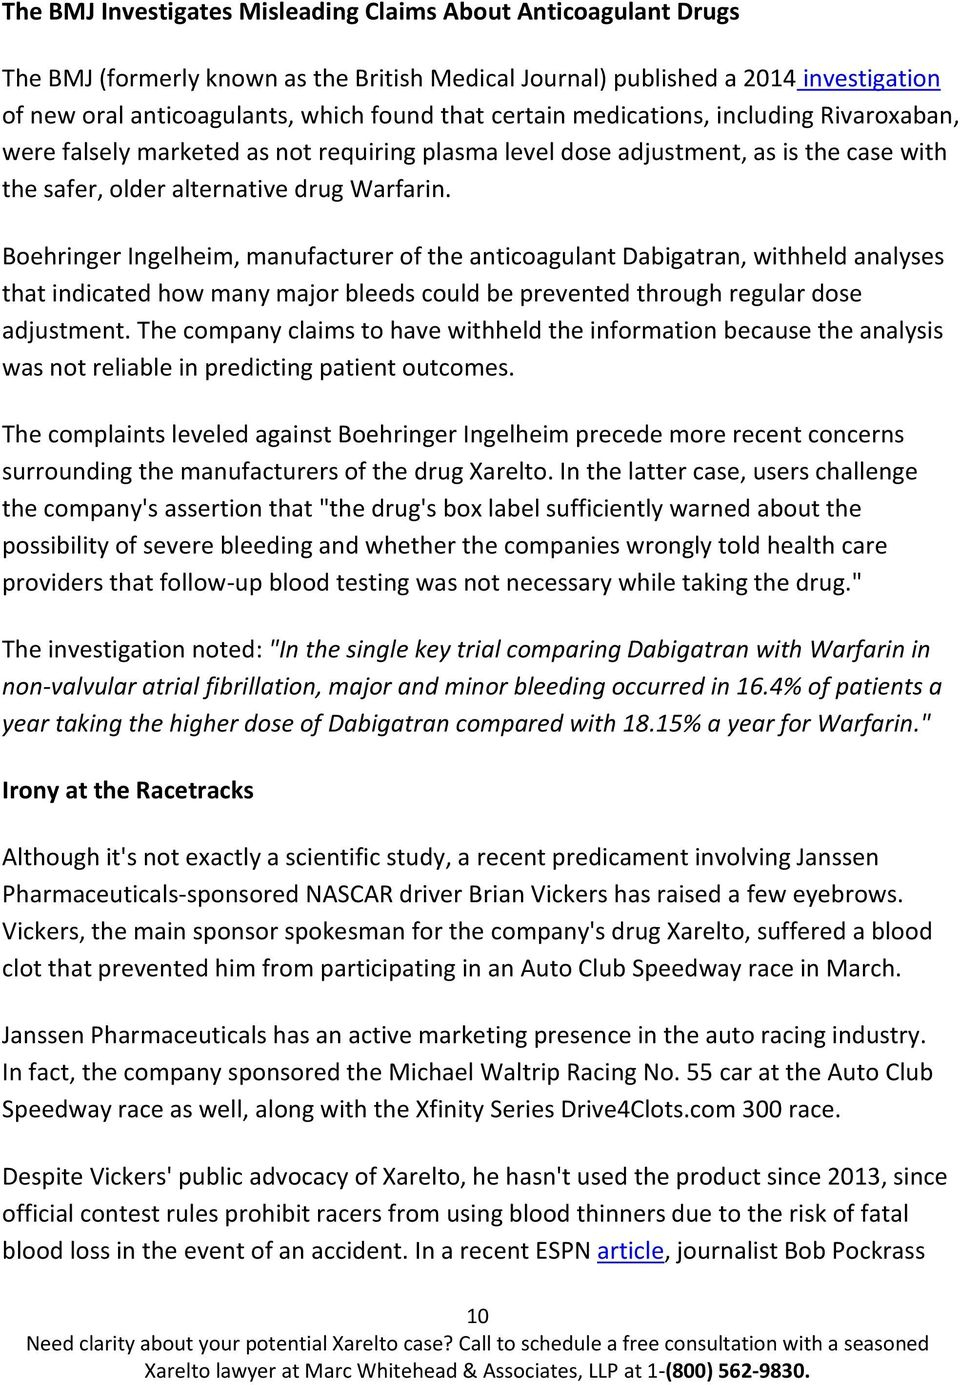 Boehringer Ingelheim, manufacturer of the anticoagulant Dabigatran, withheld analyses that indicated how many major bleeds could be prevented through regular dose adjustment.